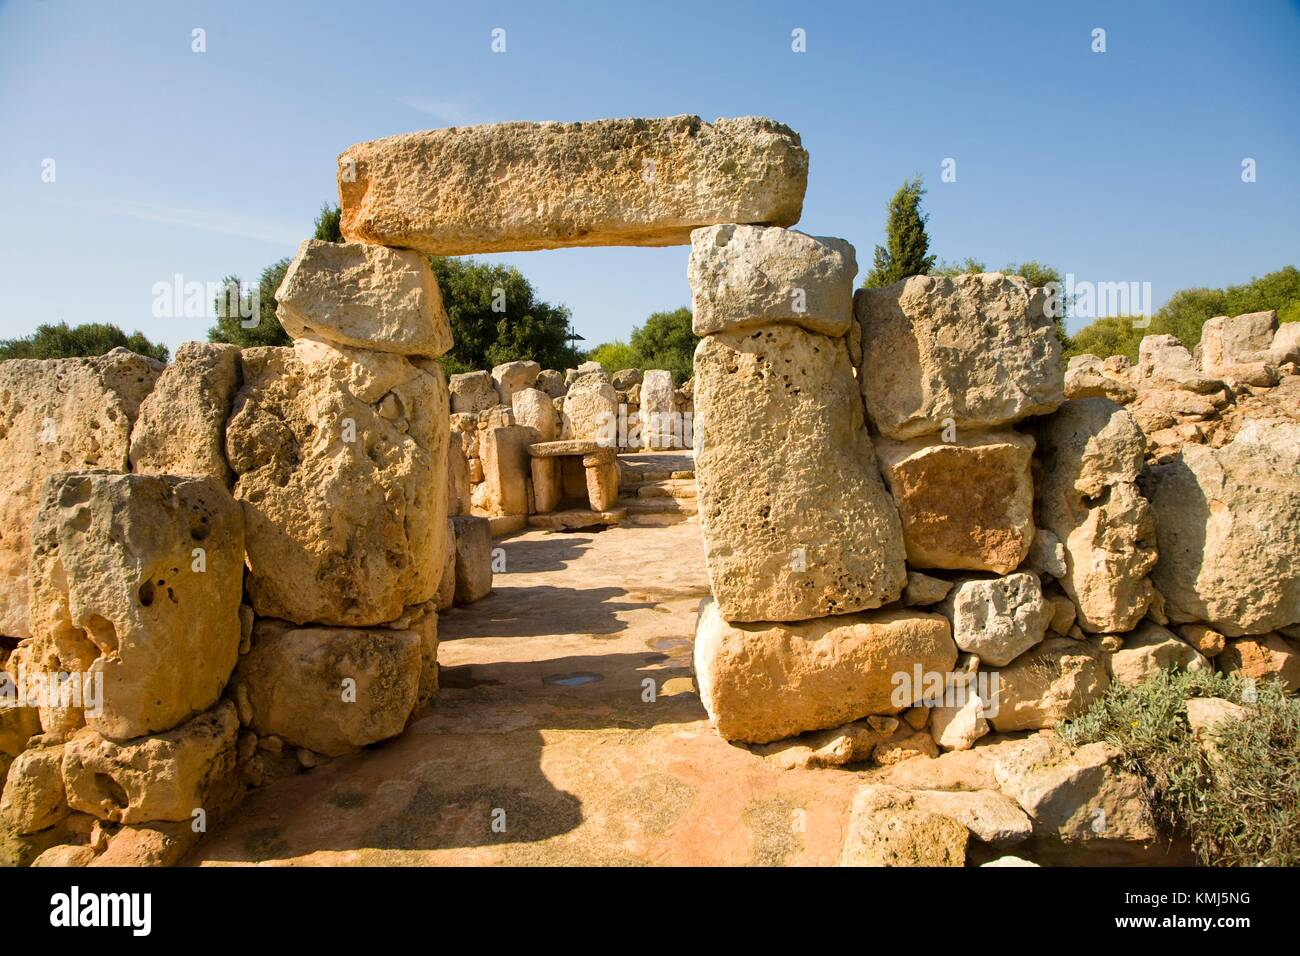 Binaparratxet Petit. Archeologic site from about 9th century B. C. Mahon airport. Situated at the south departure - Stock Image